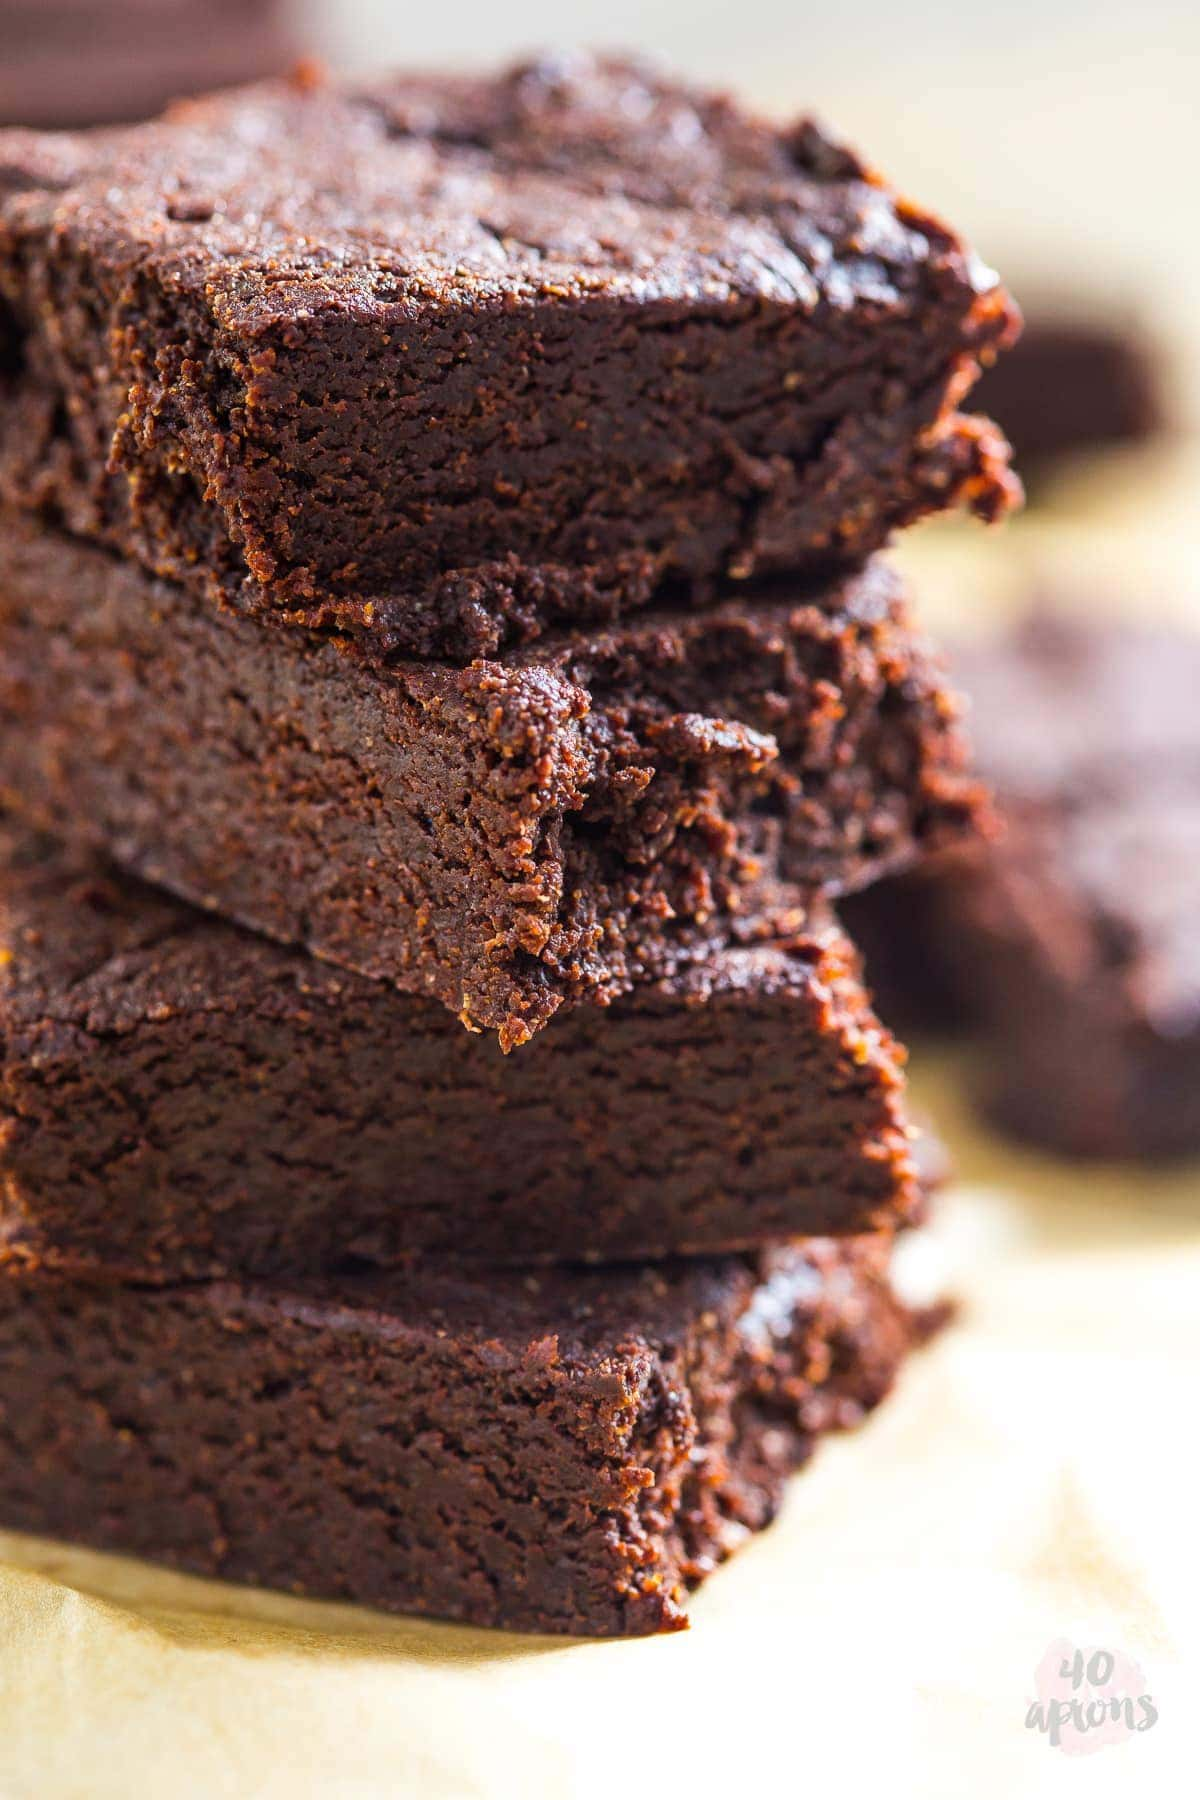 Healthy fudgy brownies - rich, fudgy, dense, and chewy, but with no refined sugar or flour! Everything is awesome! // 40 Aprons